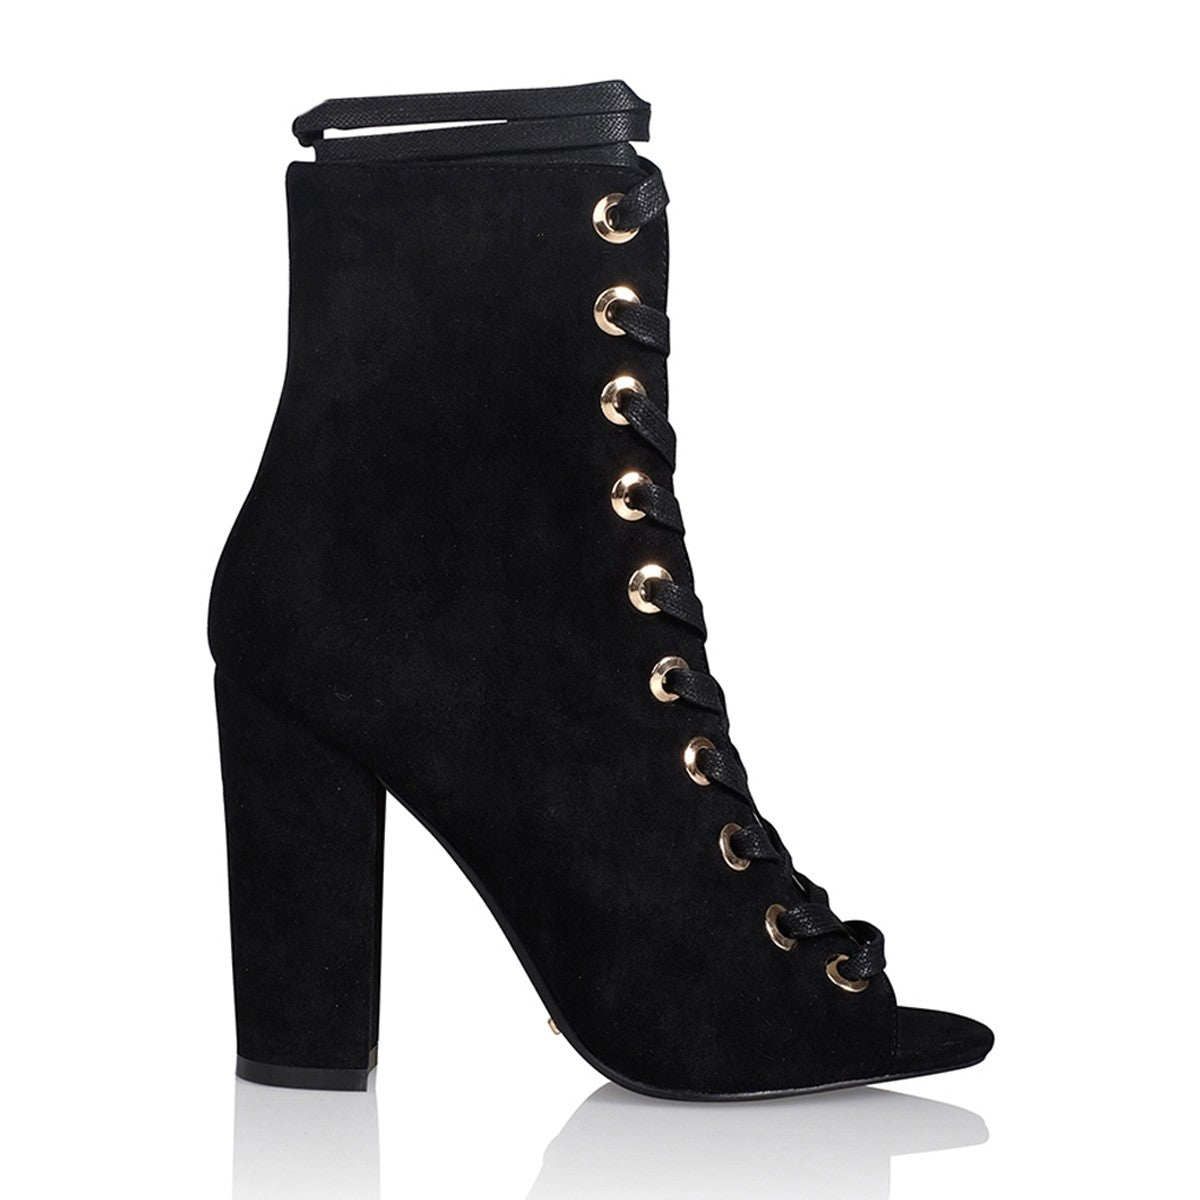 Brinnie Boots Black Suede